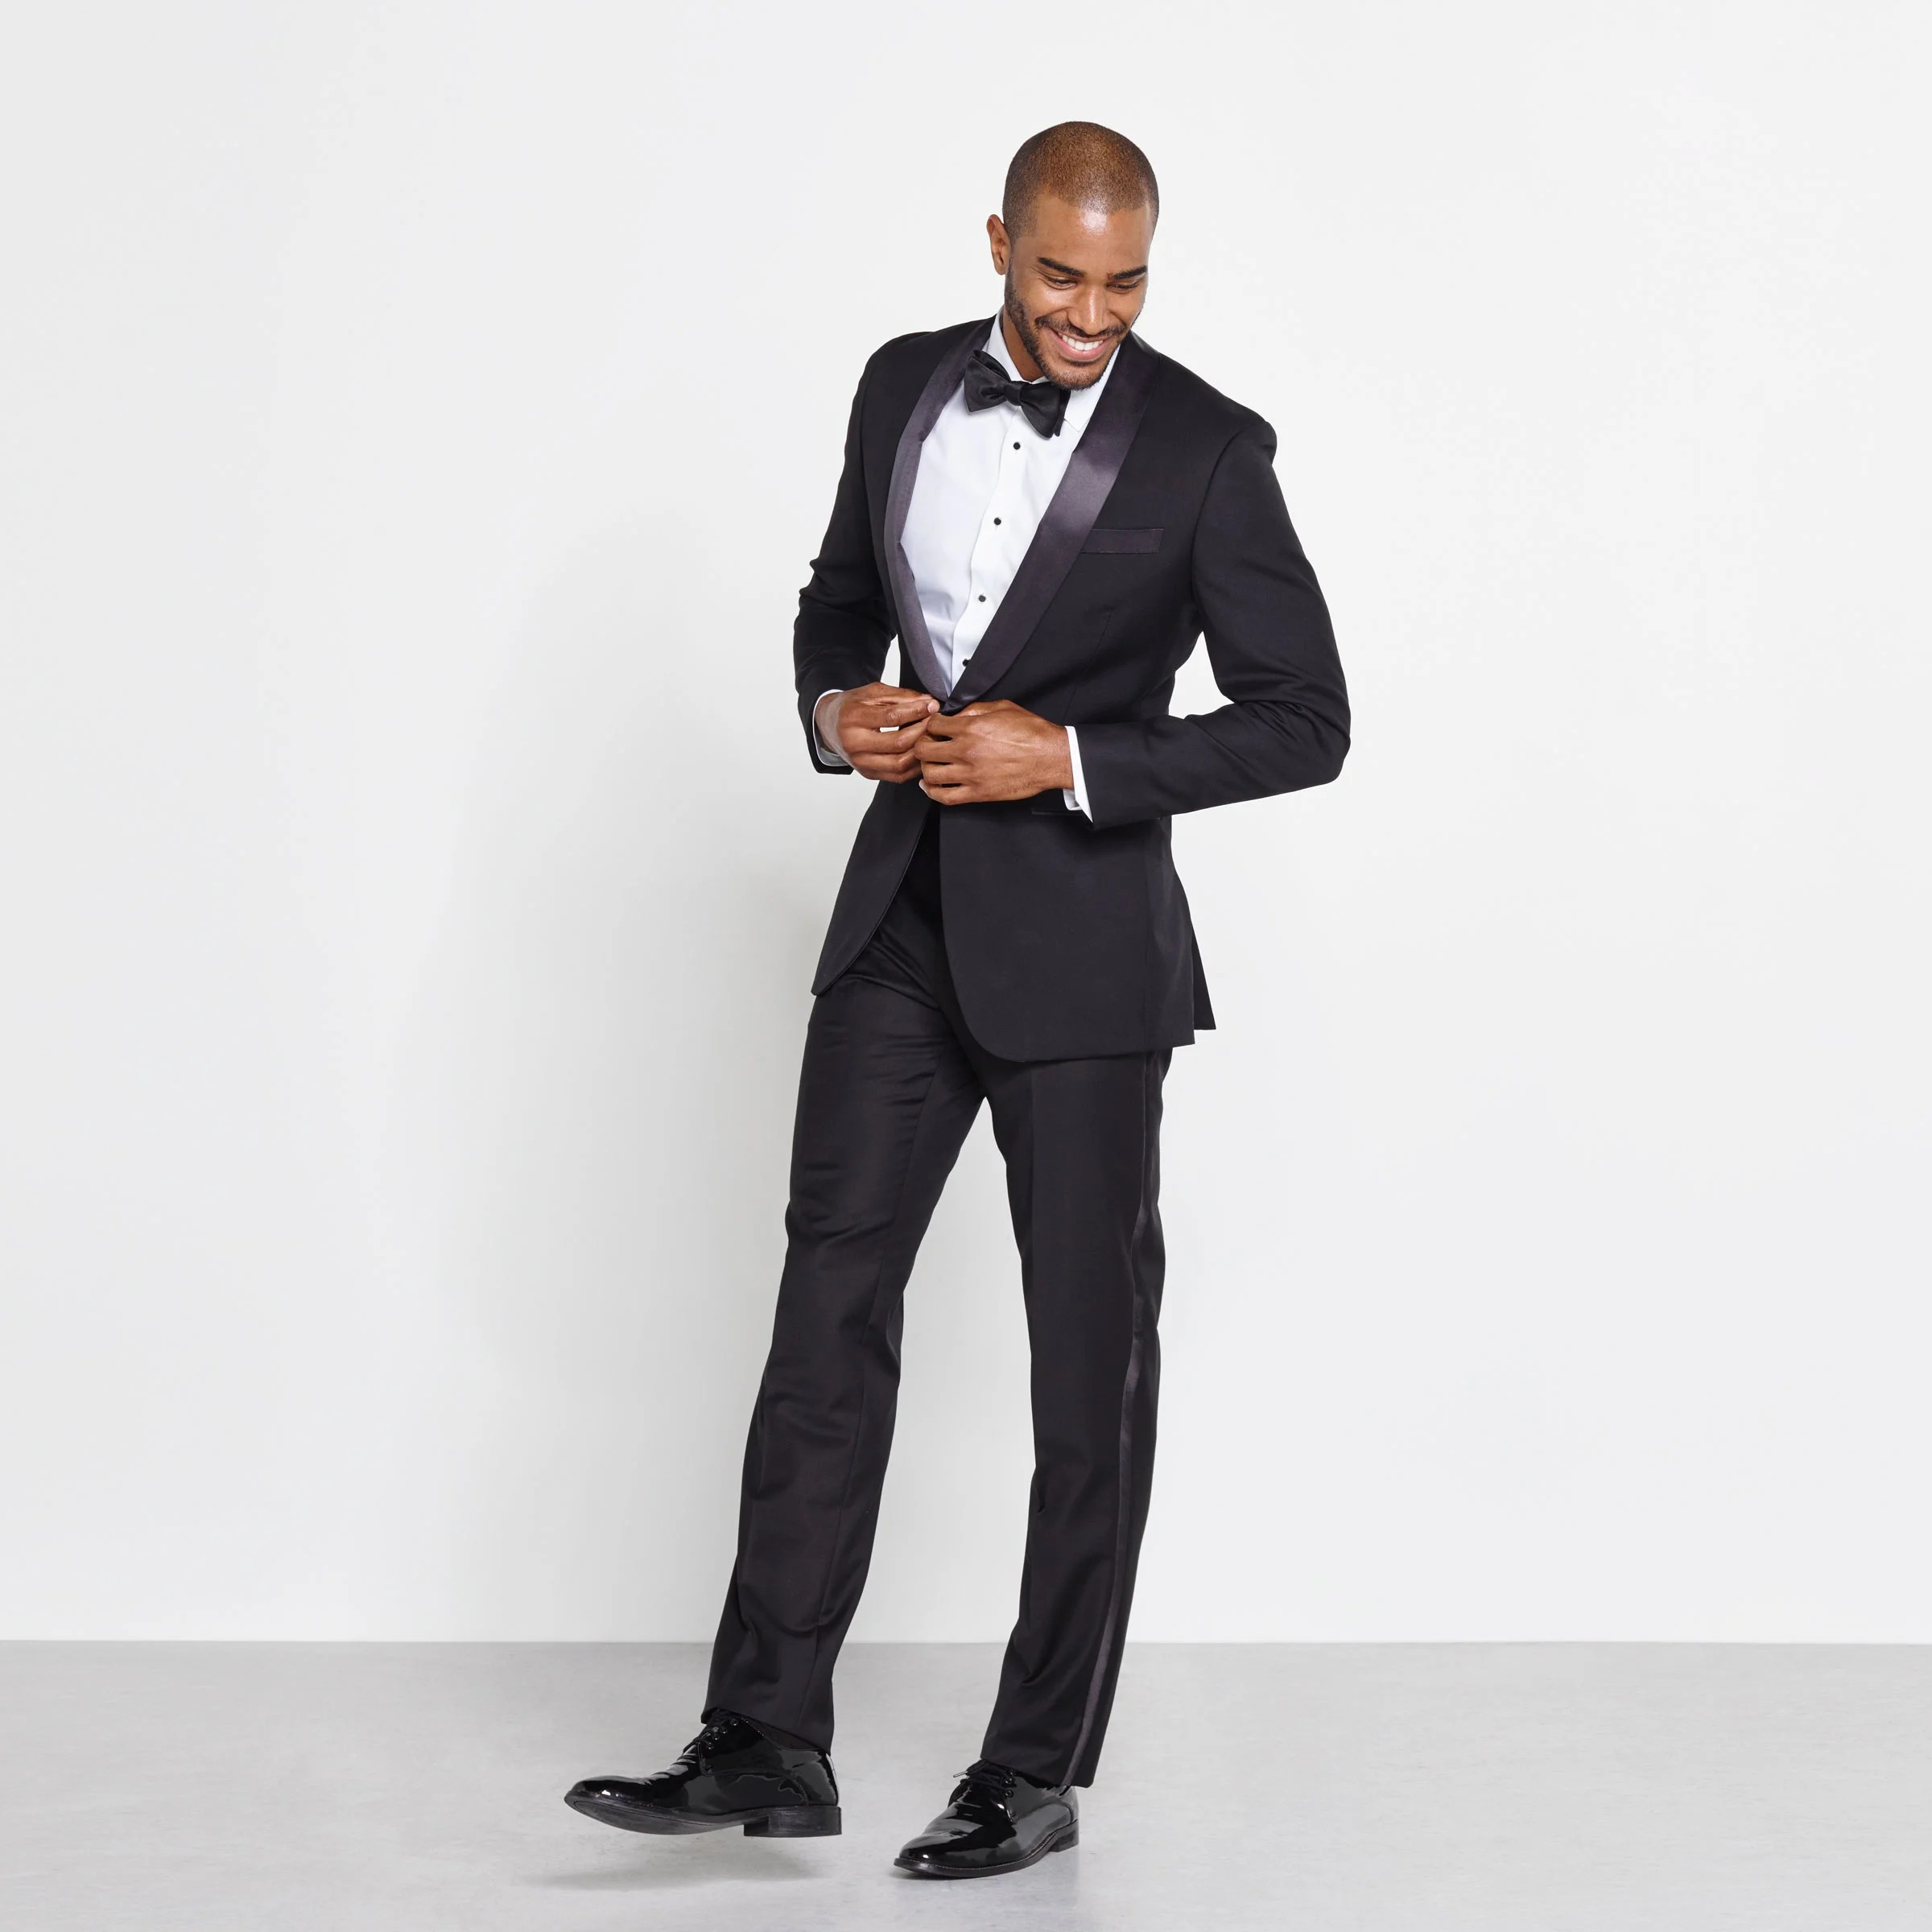 Black Tie Wedding Attire For Men